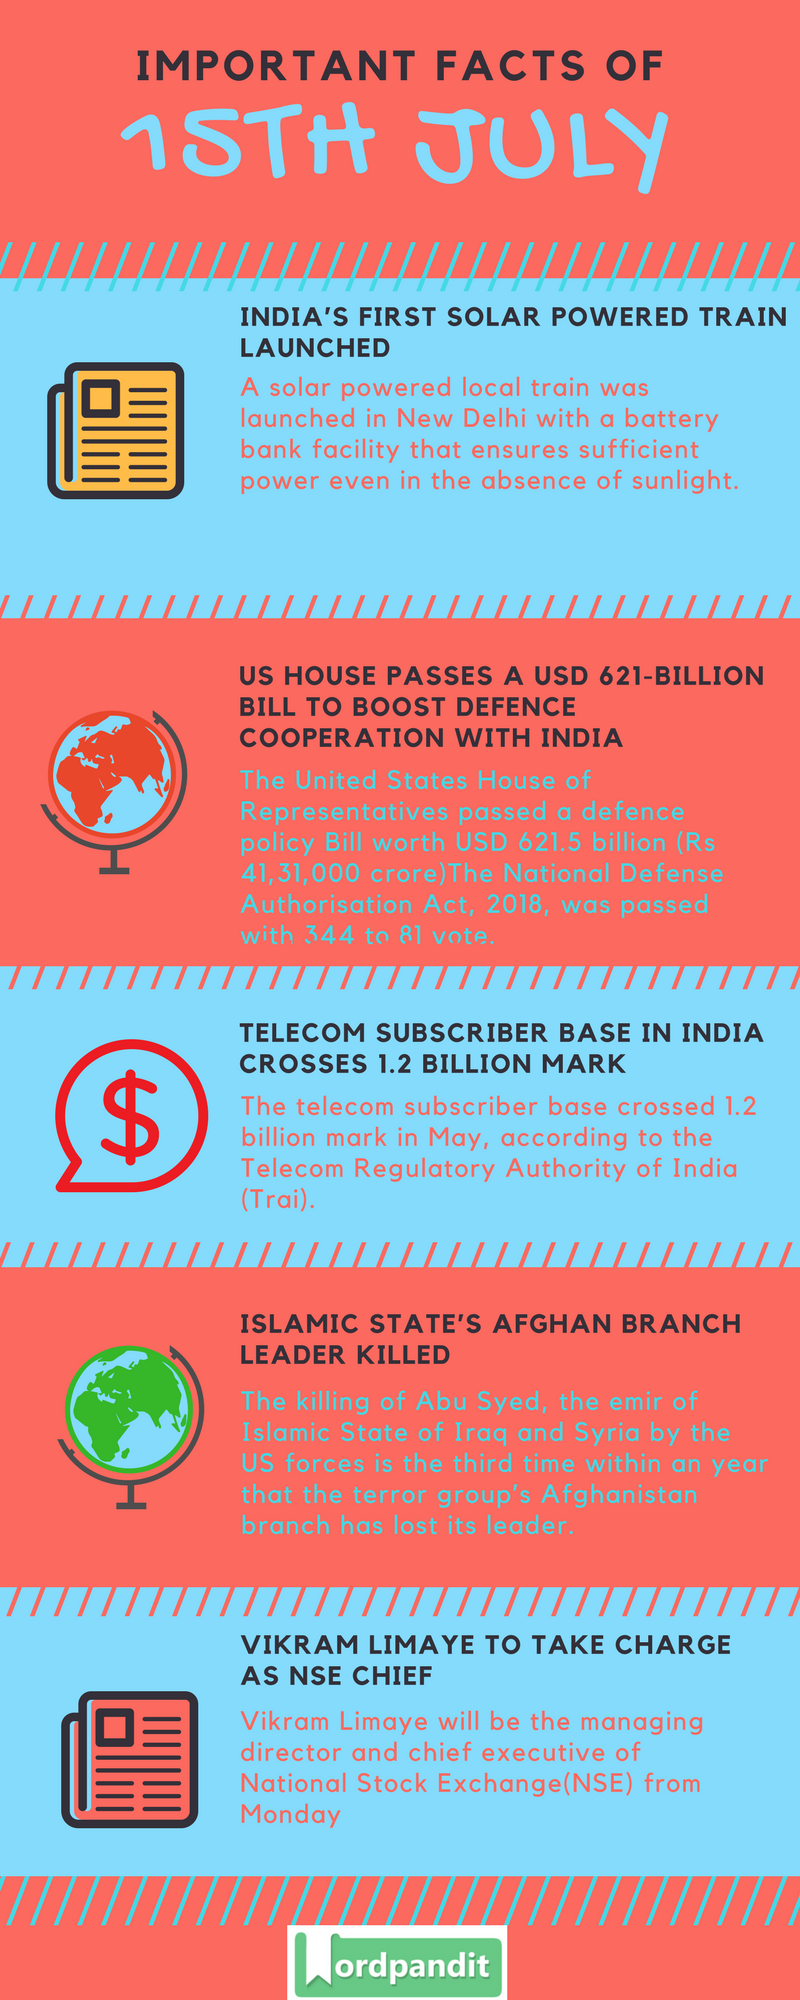 Daily-Current-Affairs-15-july-2017-Current-Affairs-Quiz-july-15-2017-Current-Affairs-Infographic